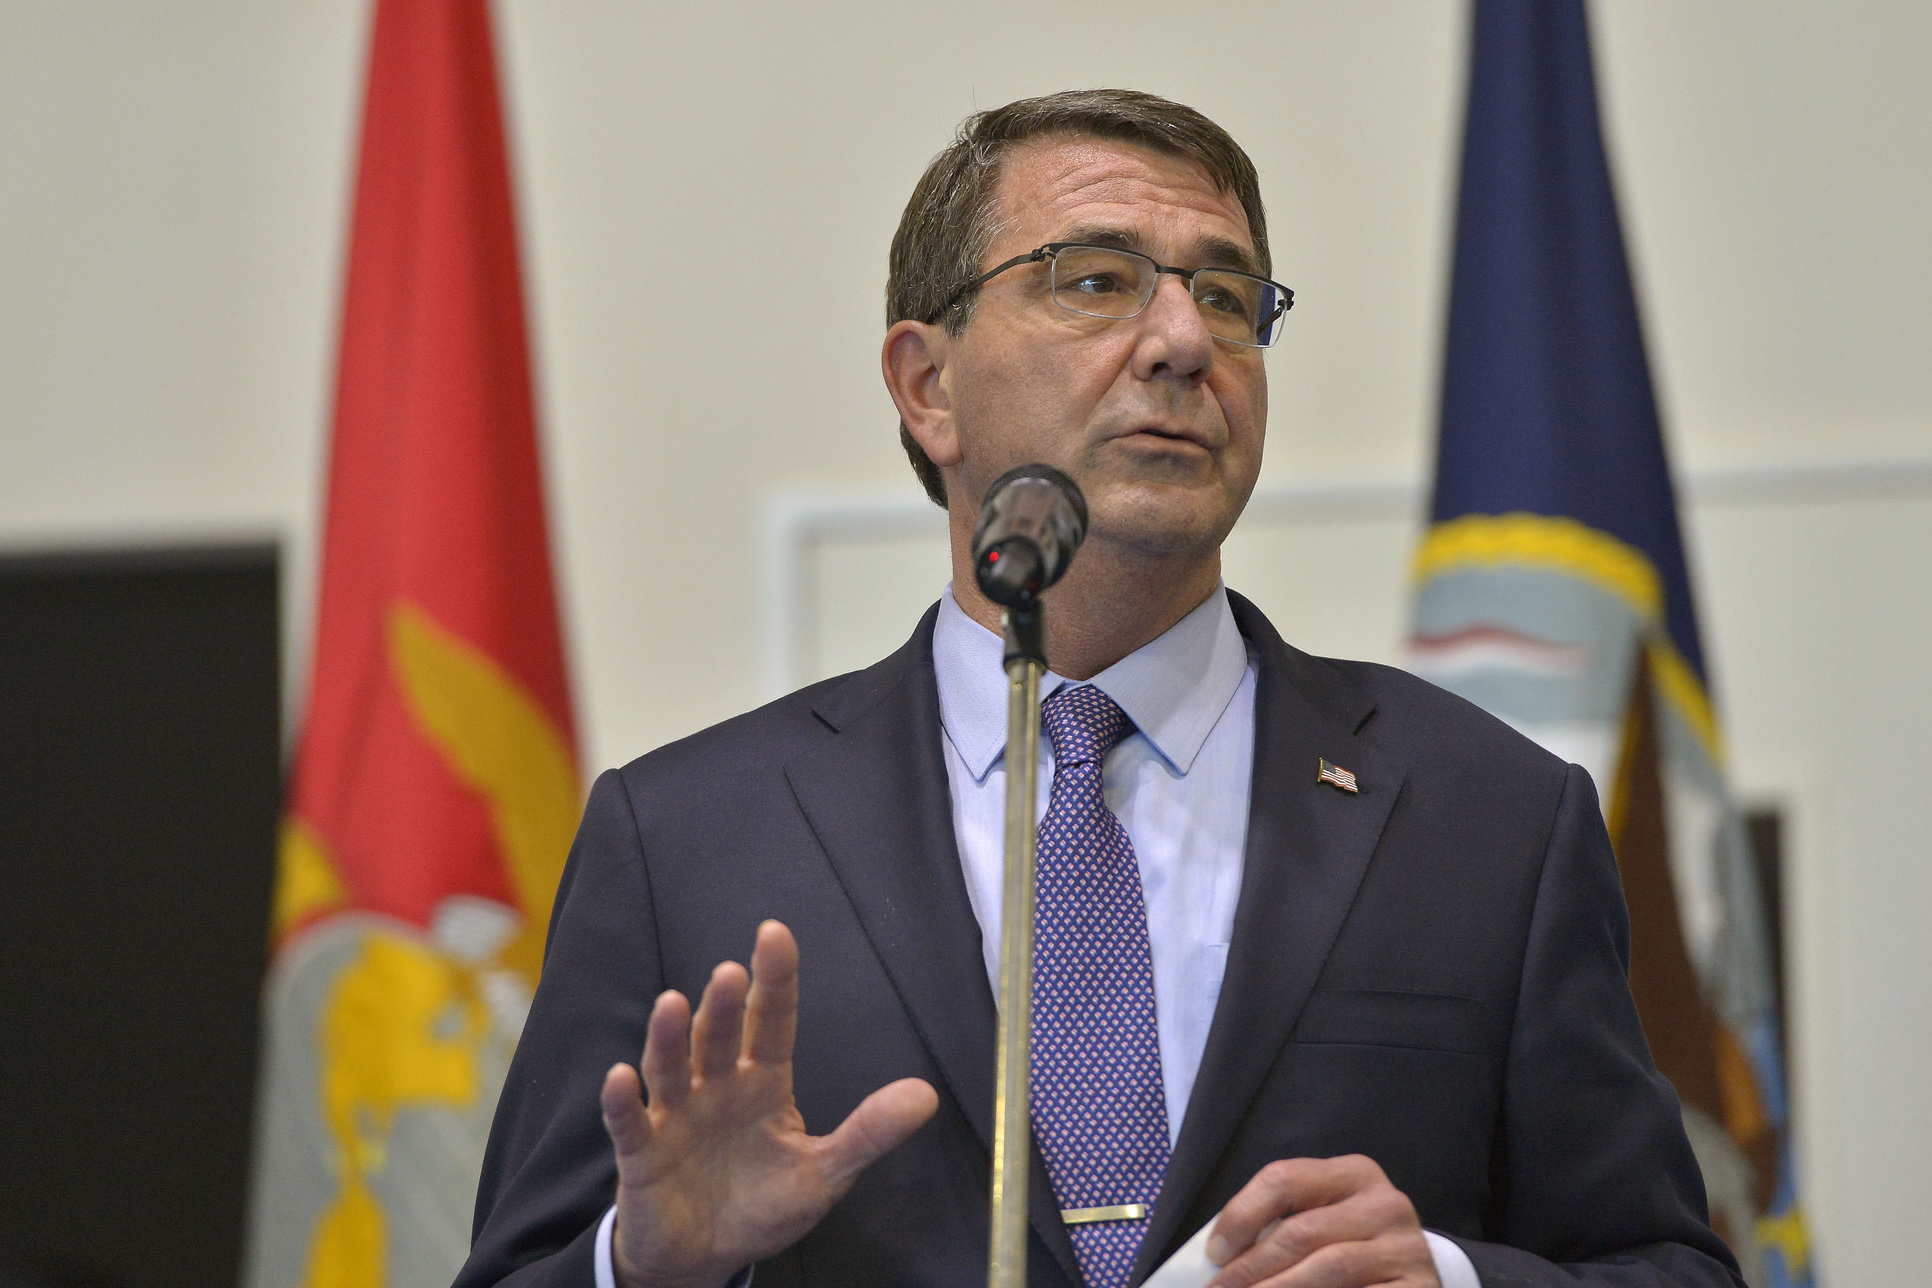 U.S. Defense Secretary Ash Carter addresses U.S. service members during a troop event at U.S. Africa Command headquarters in Stuttgart, Germany, June 4, 2015. DoD photo by Glenn Fawcett